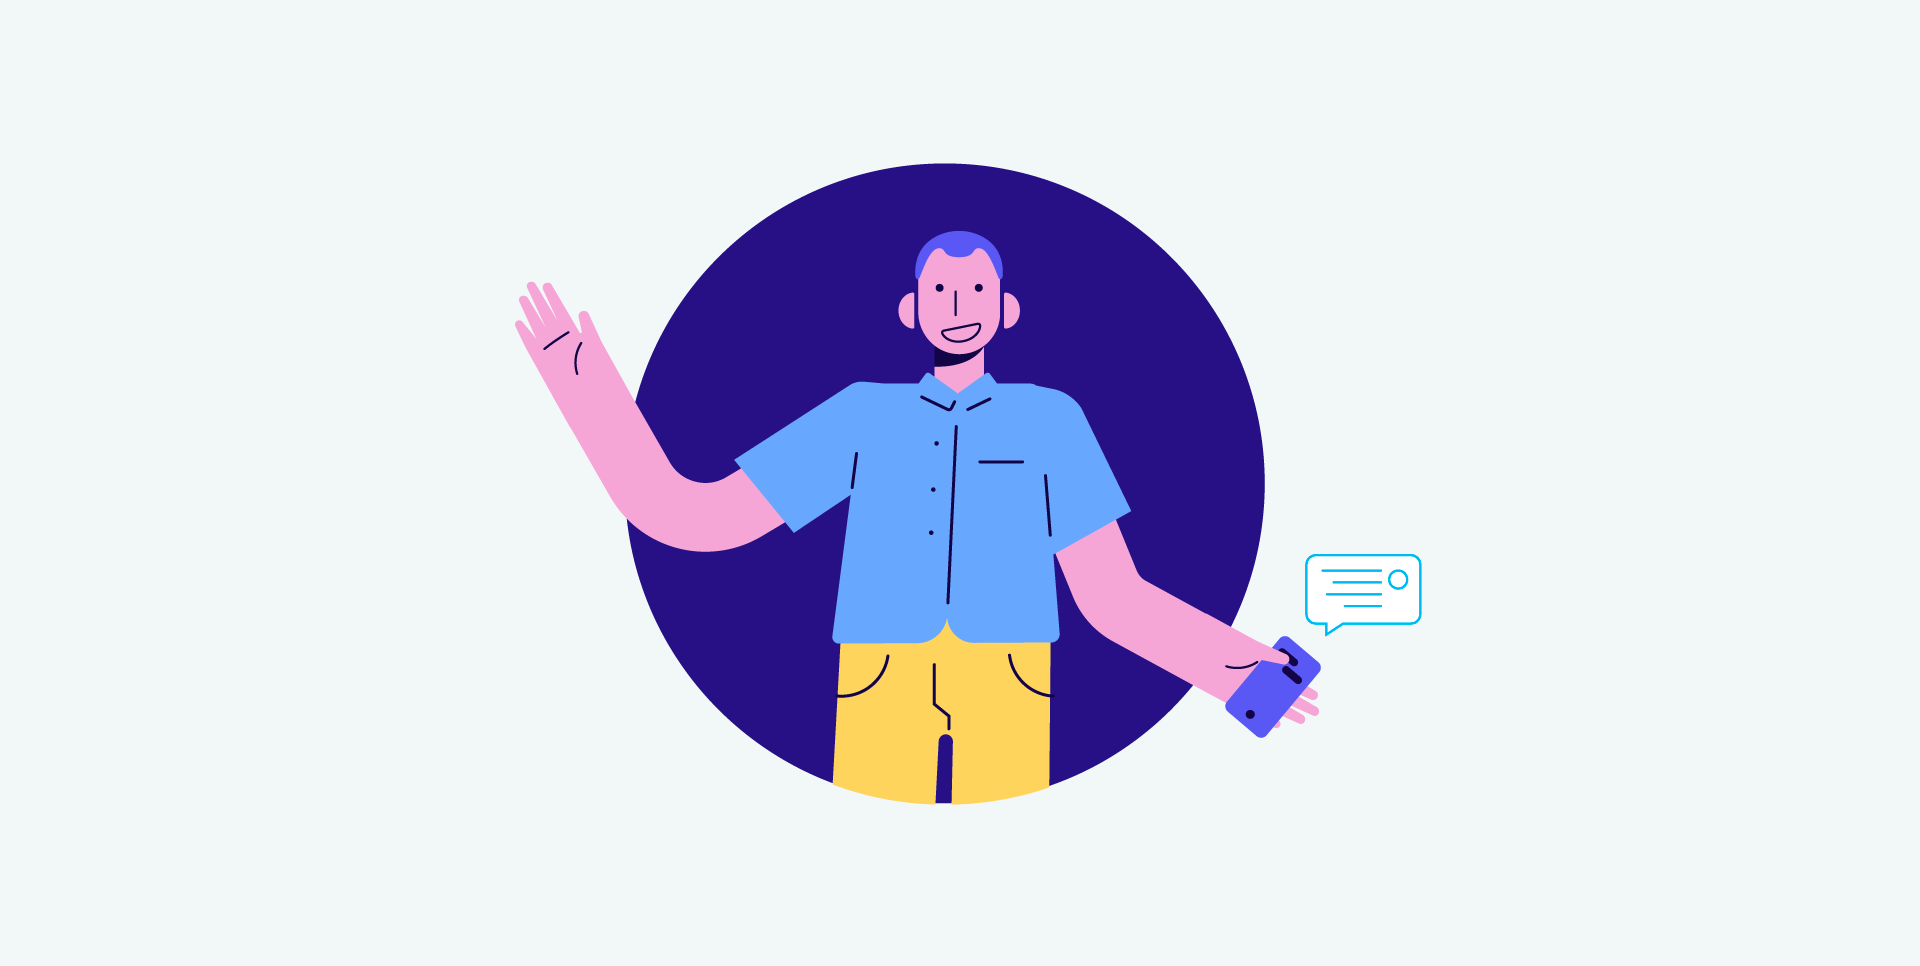 A service designed for you: using messaging to personalize user experience